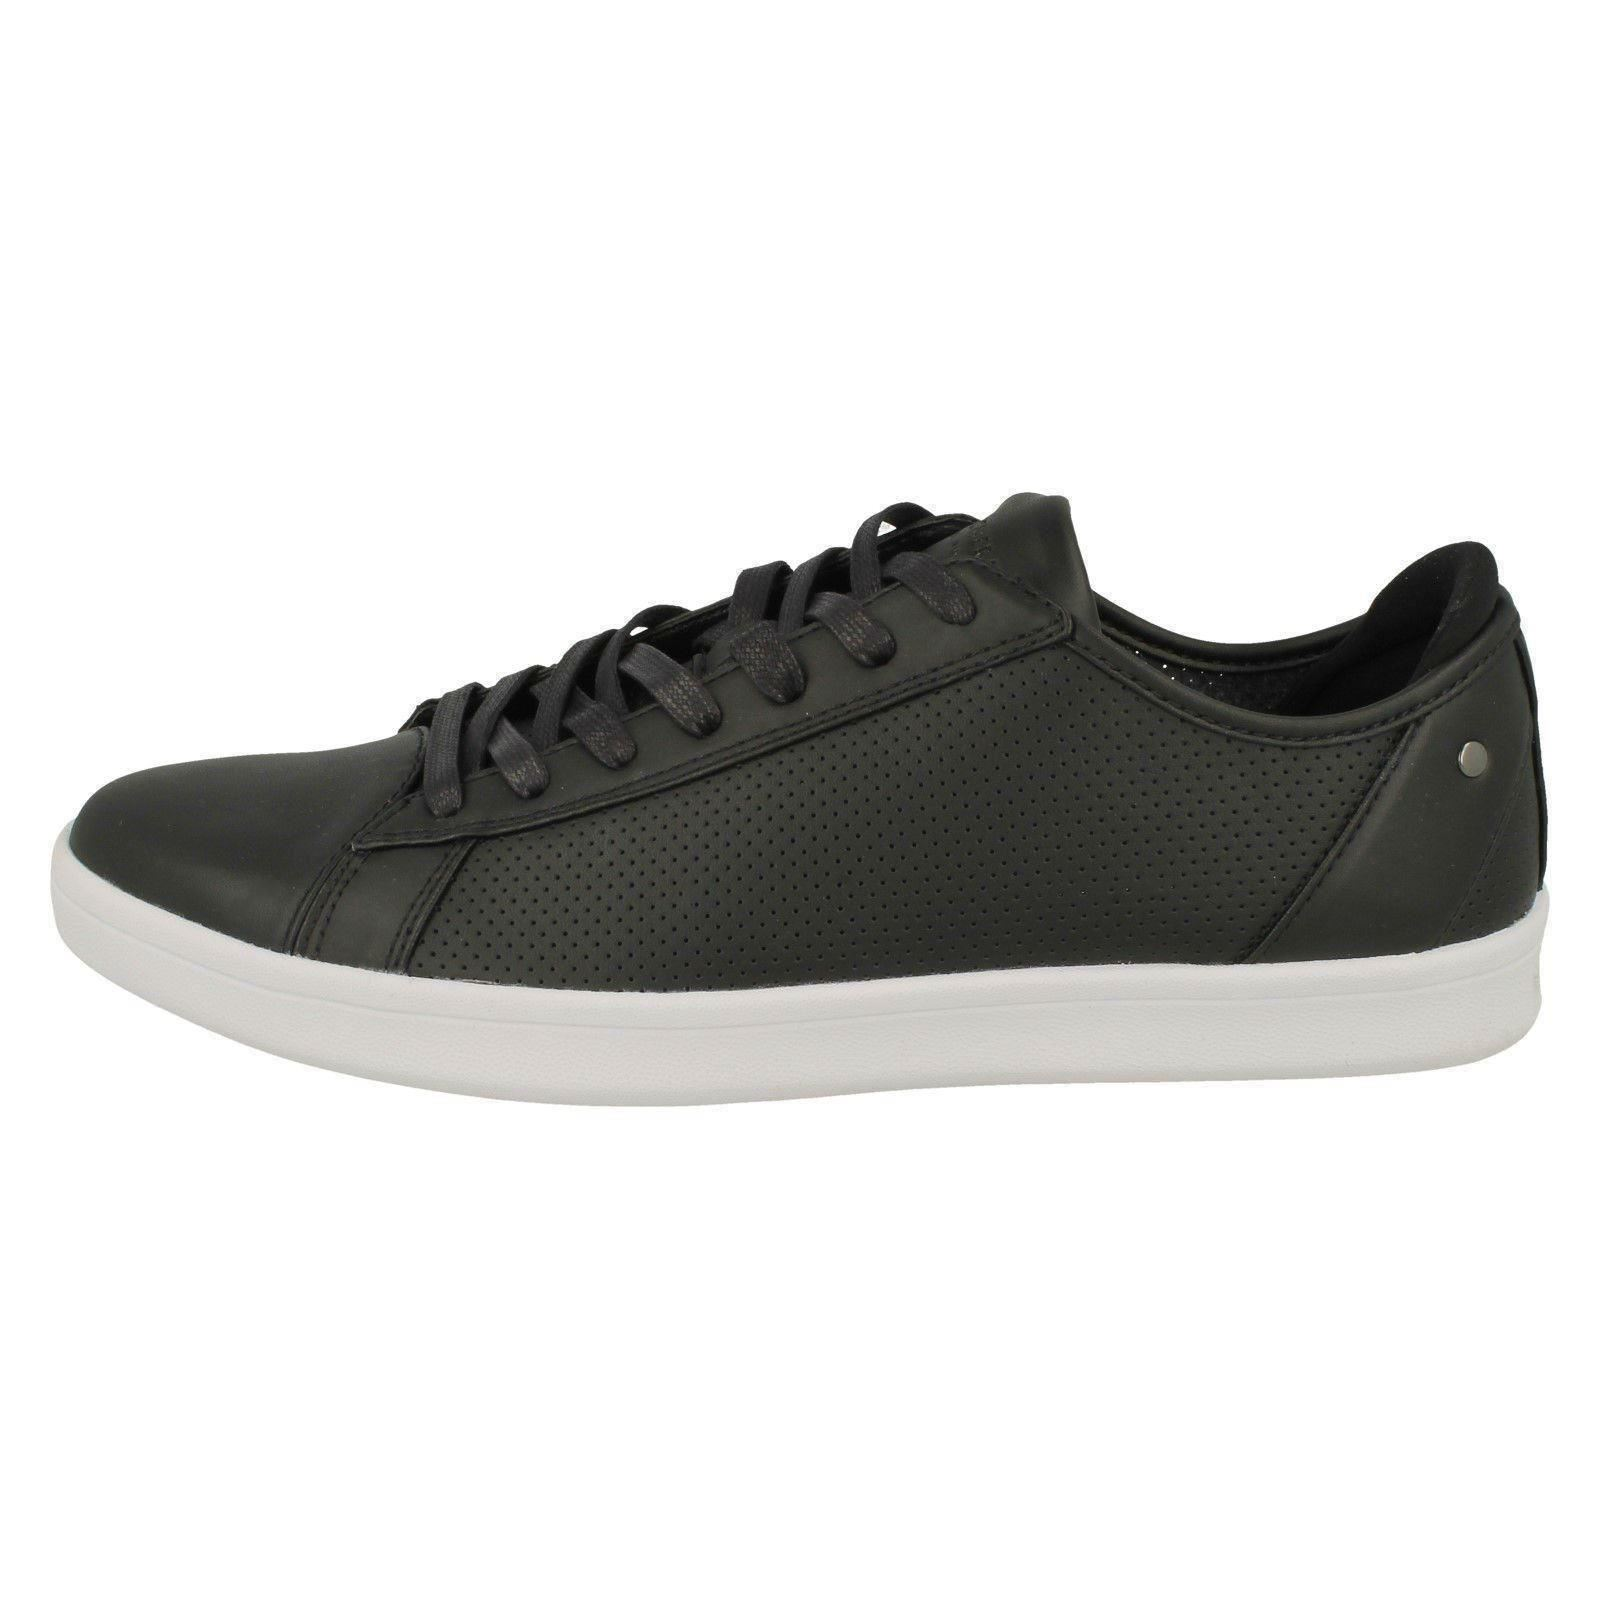 Mens Skechers Stylish Lace-Up Trainers Highland-T